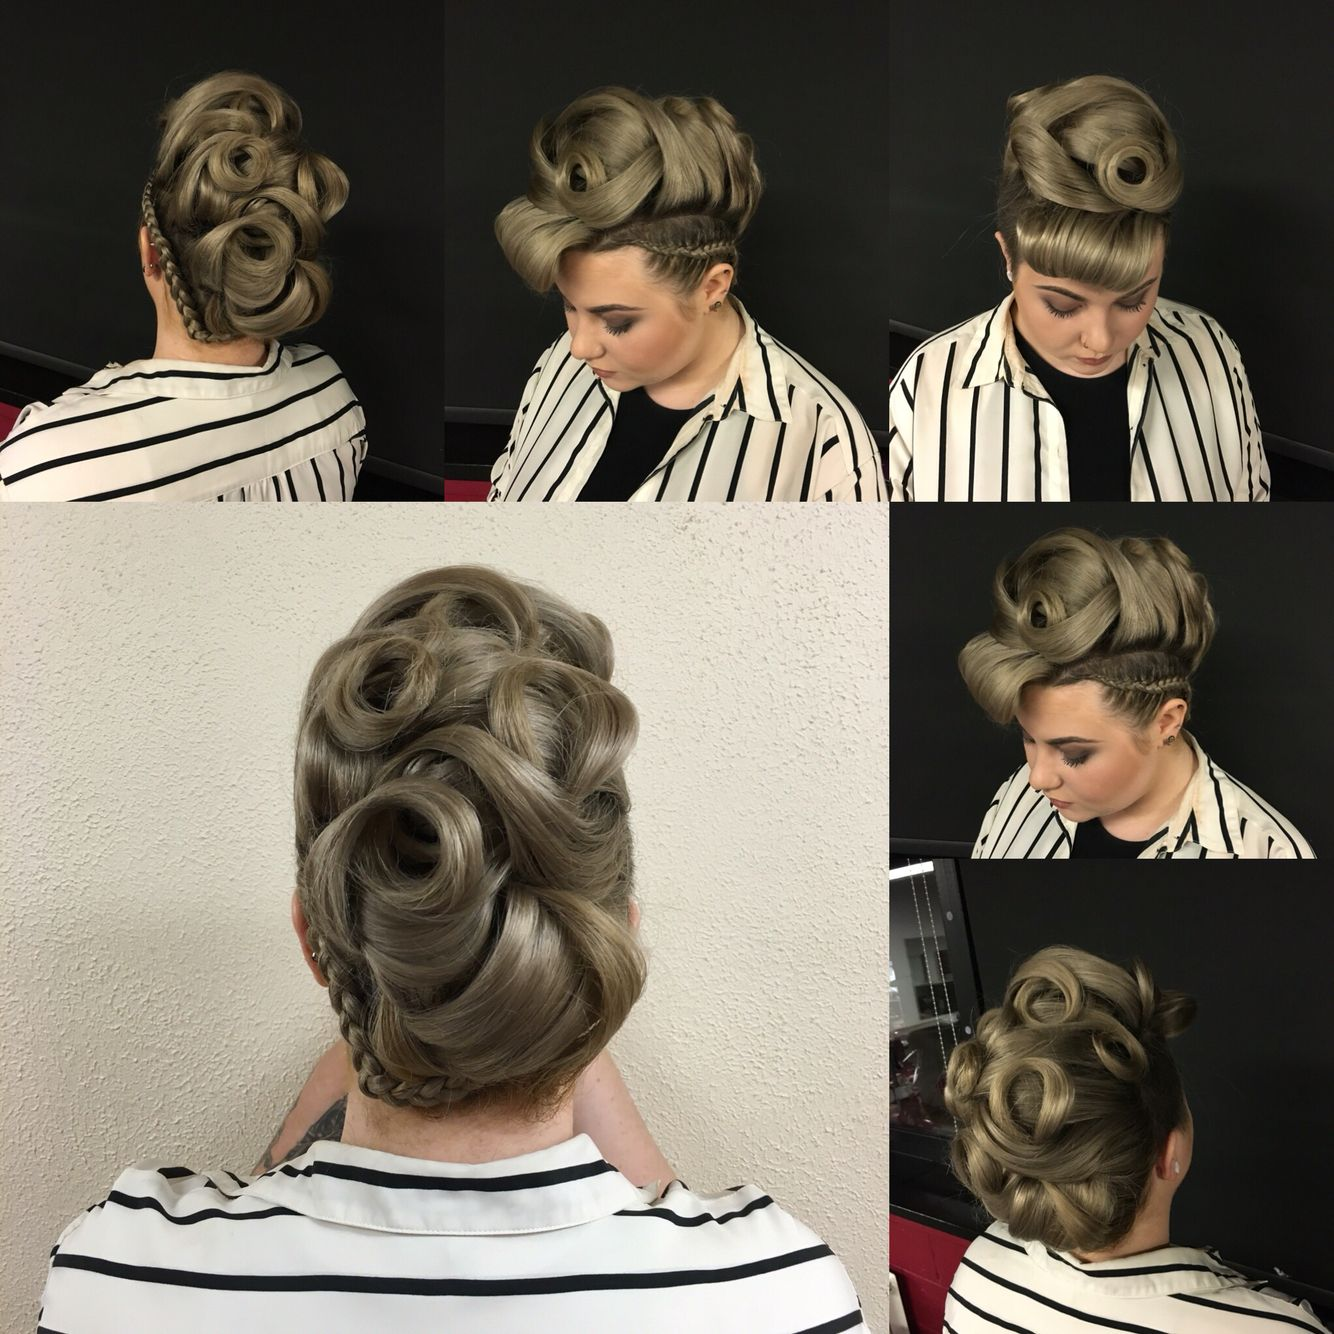 Creative Hair Up By Me Creative Hairstyles Up Hairstyles Hair Levels